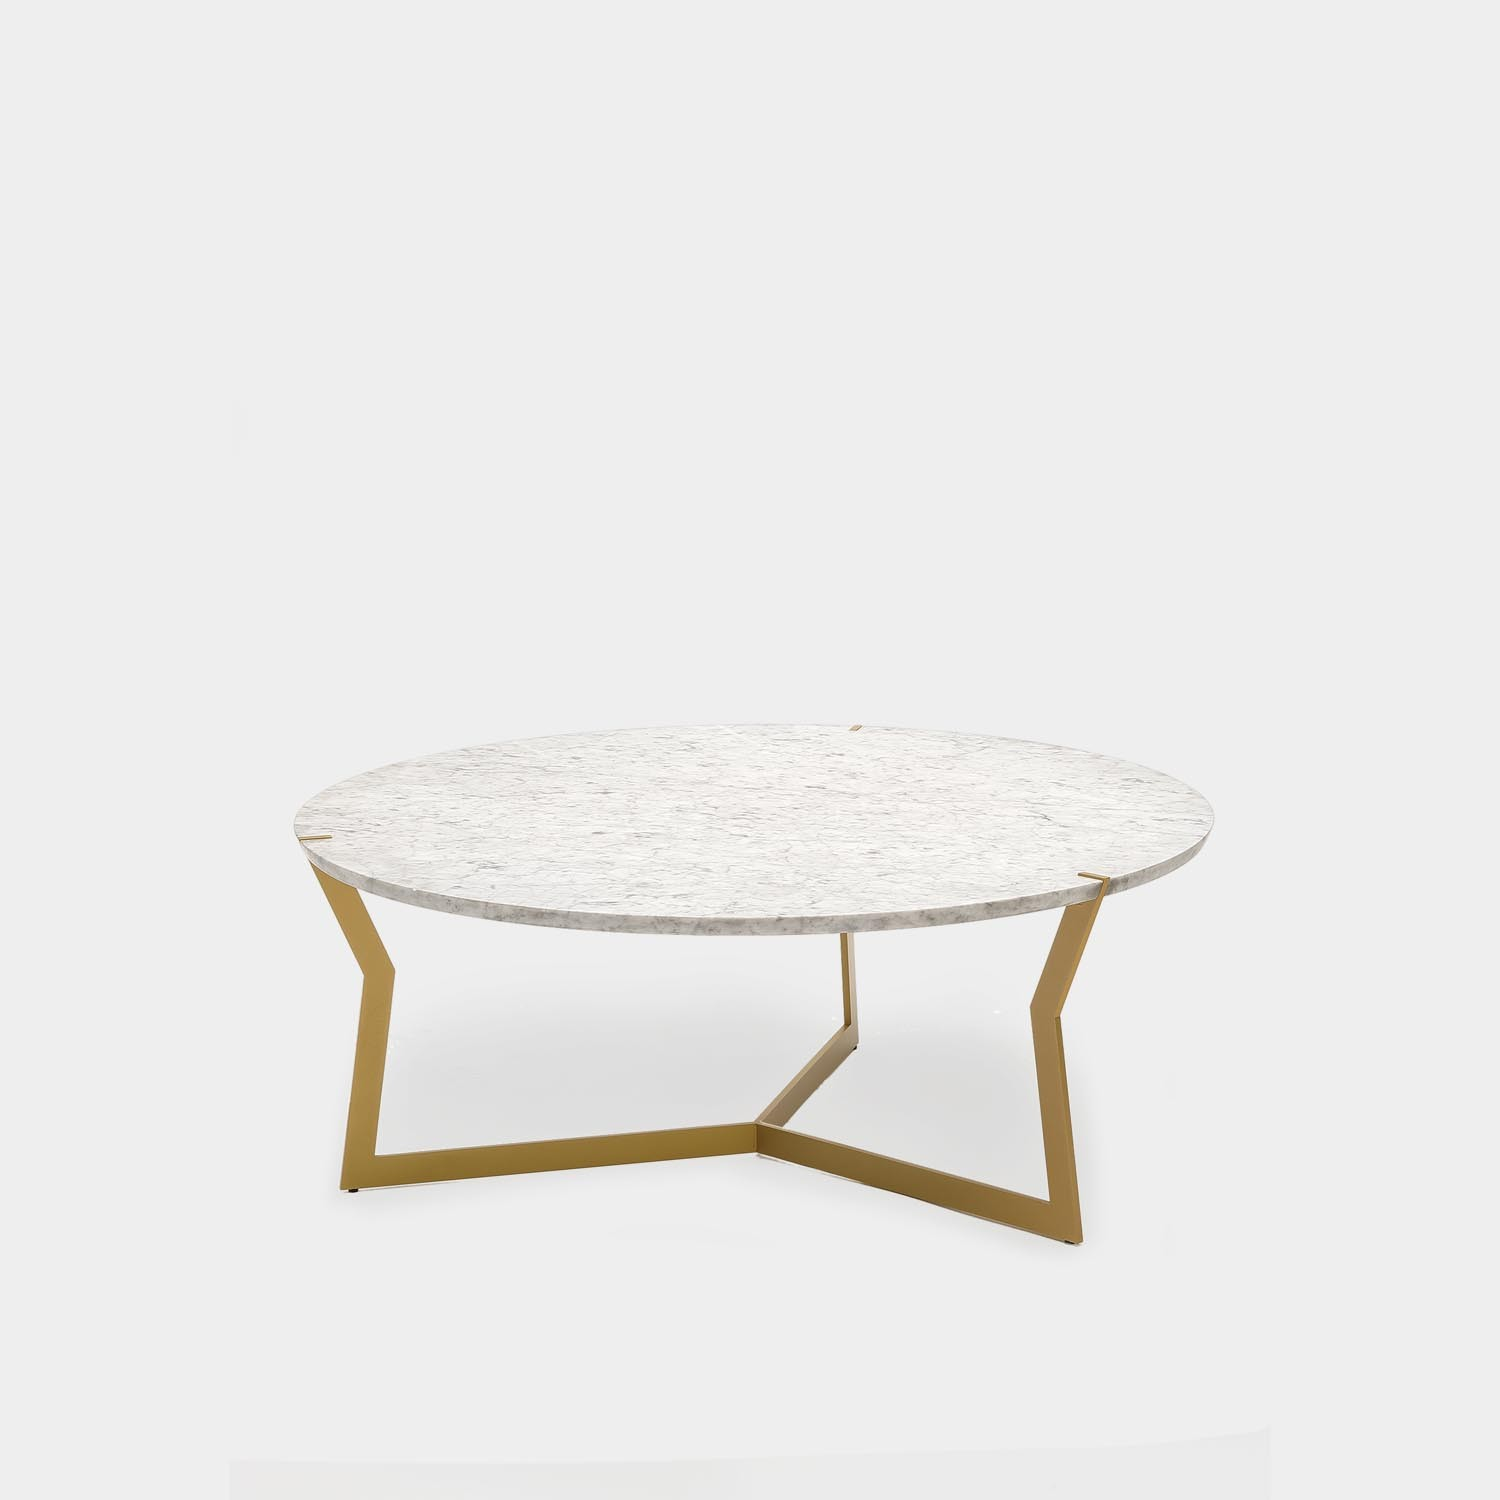 Round Coffee Table Star, Carrara Marble